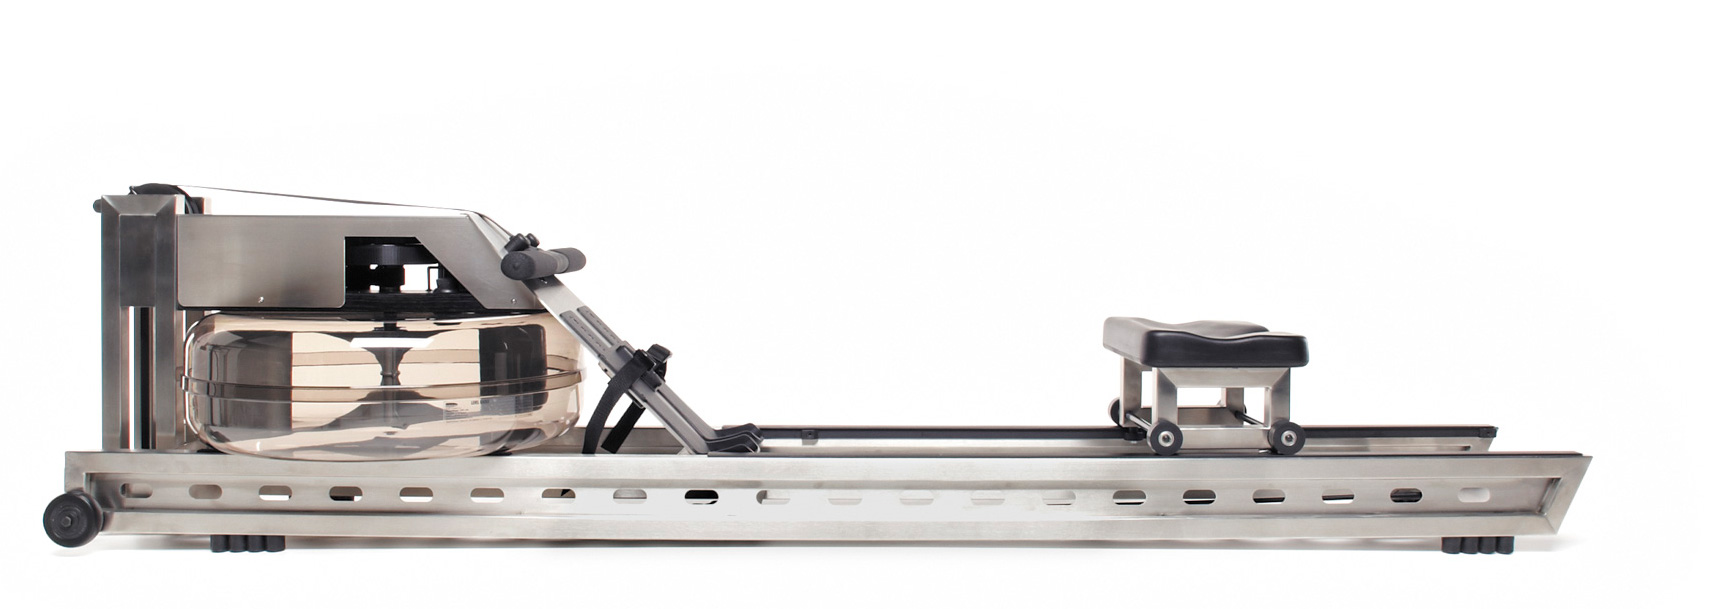 WaterRower S1